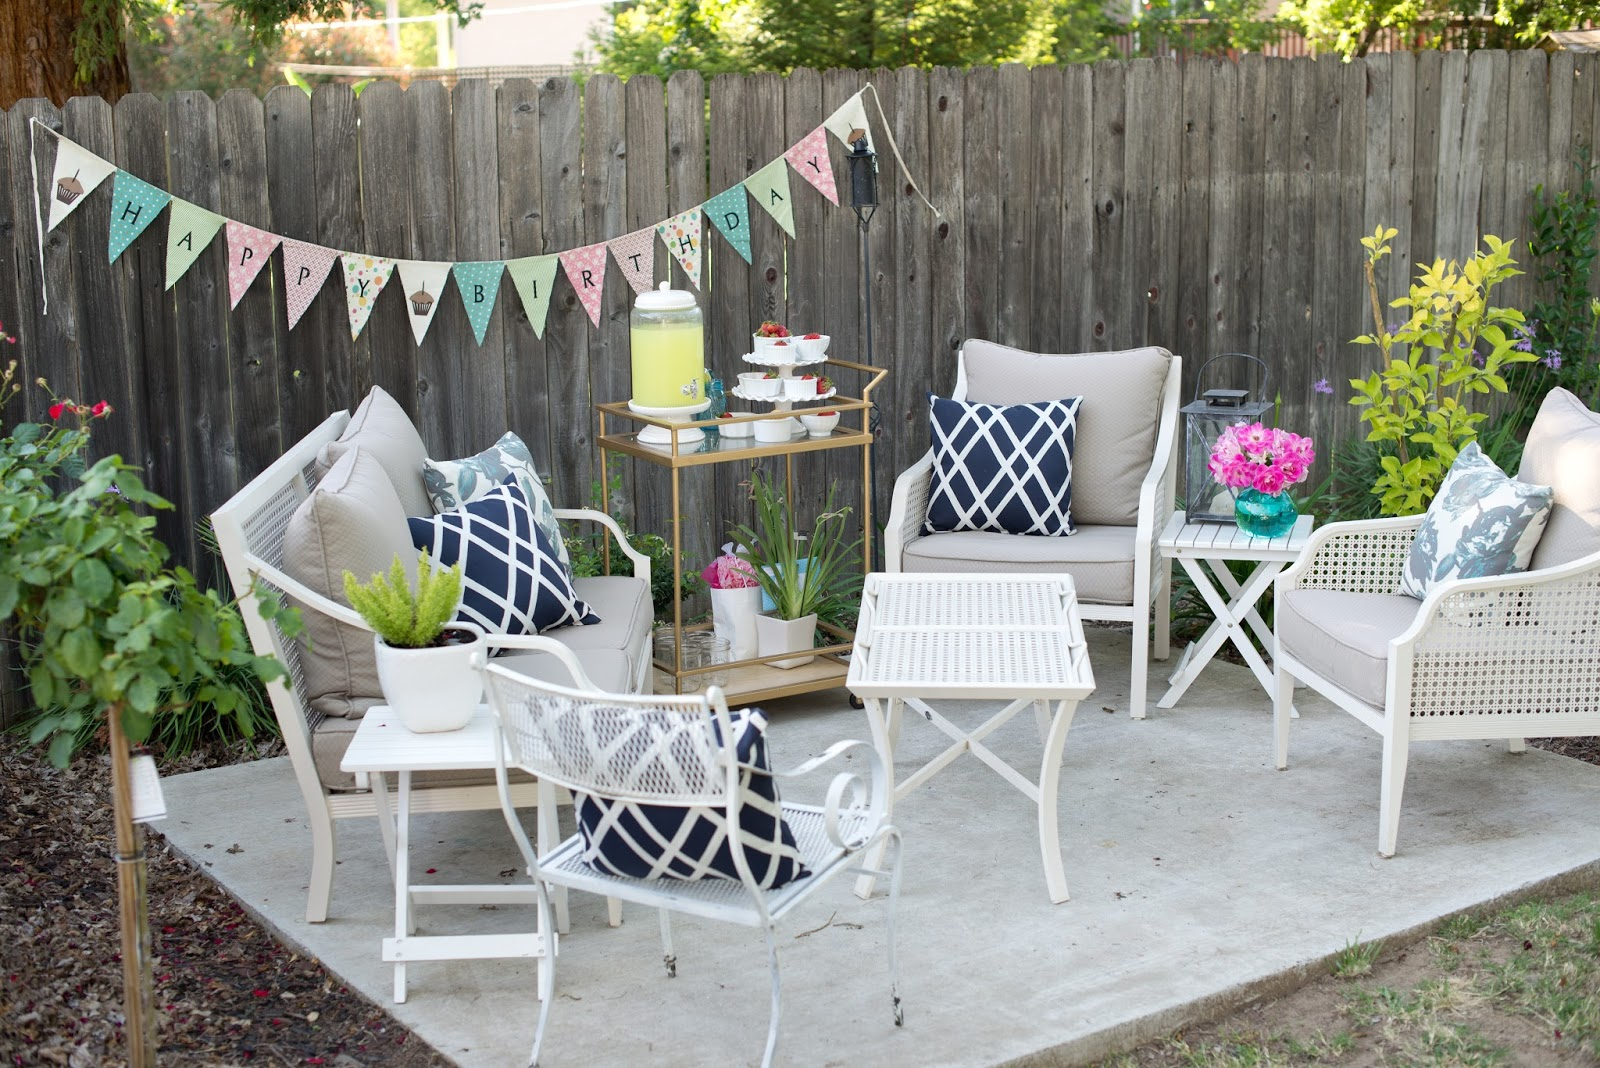 Domestic fashionista backyard al fresco birthday party for Backyard party decoration ideas for adults